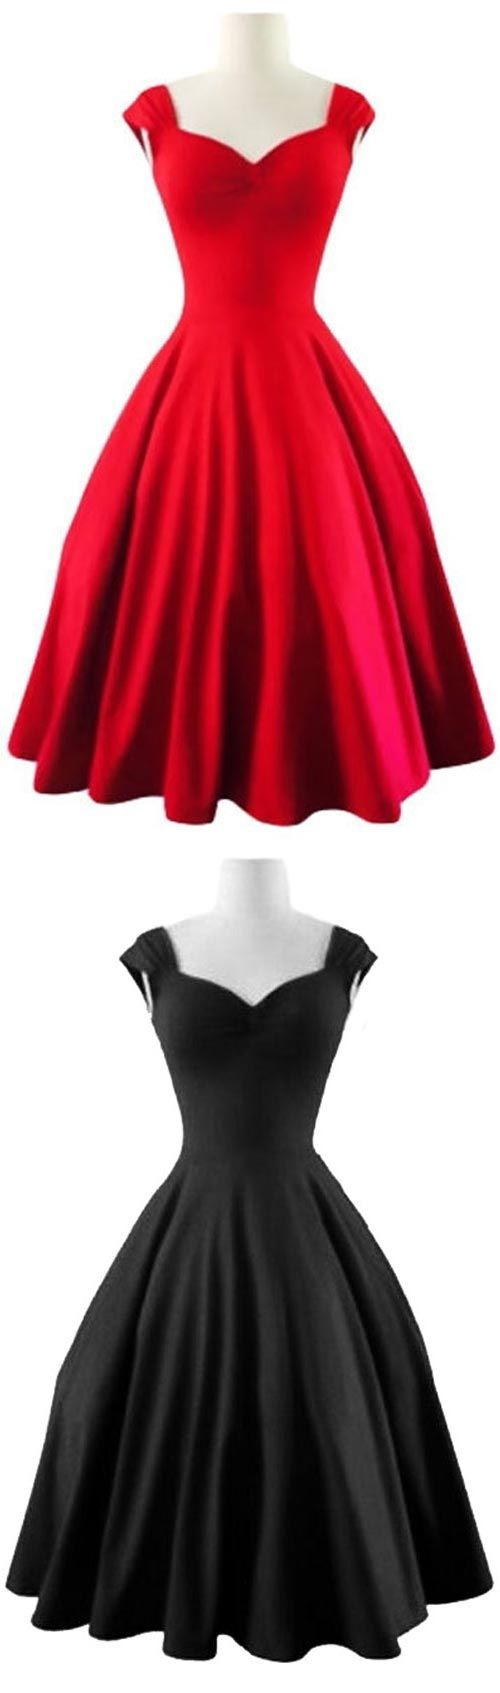 Got invited to a wedding party? Here comes your perfect solution. The dress,ONLY $25.99,featuring front sweetheart neckline and slim waist. Get it now at CUPSHE.COM